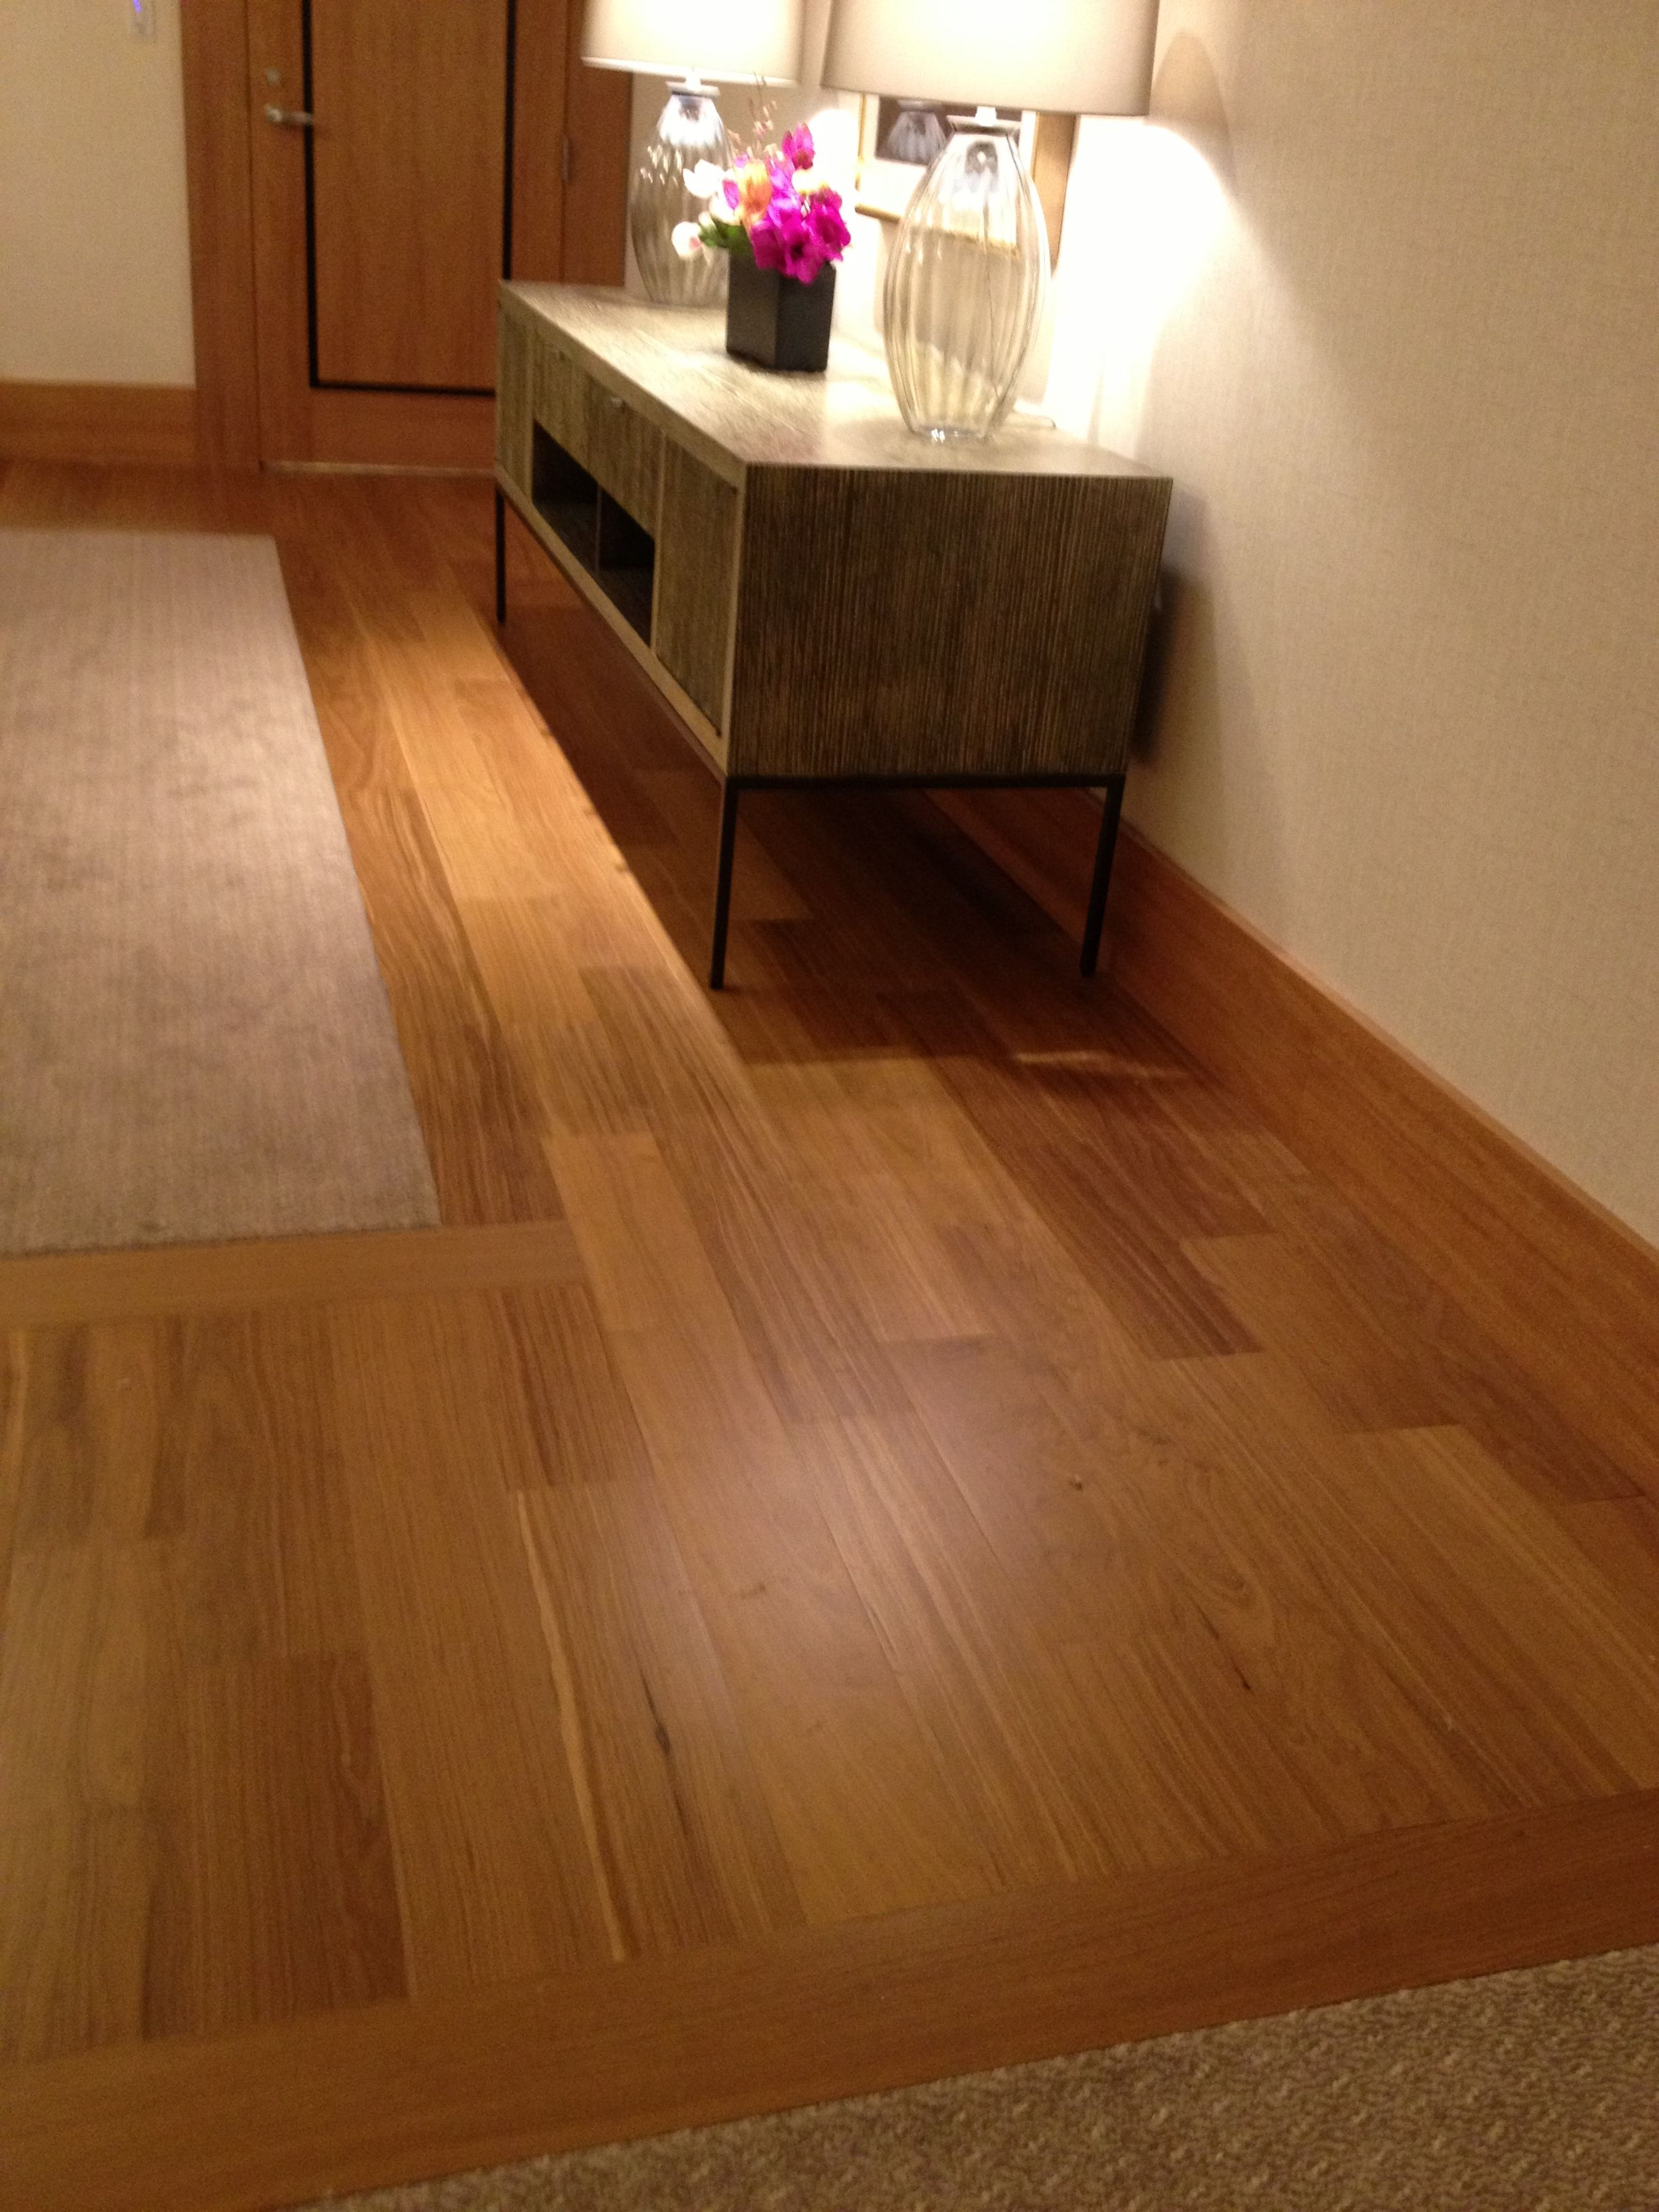 African Celtis Light Prefinished Hardwood Flooring 5 1 2 Quot Wide At Belmont Country Club In 2019 Prefinished Hardwood Hardwood Floors Flooring